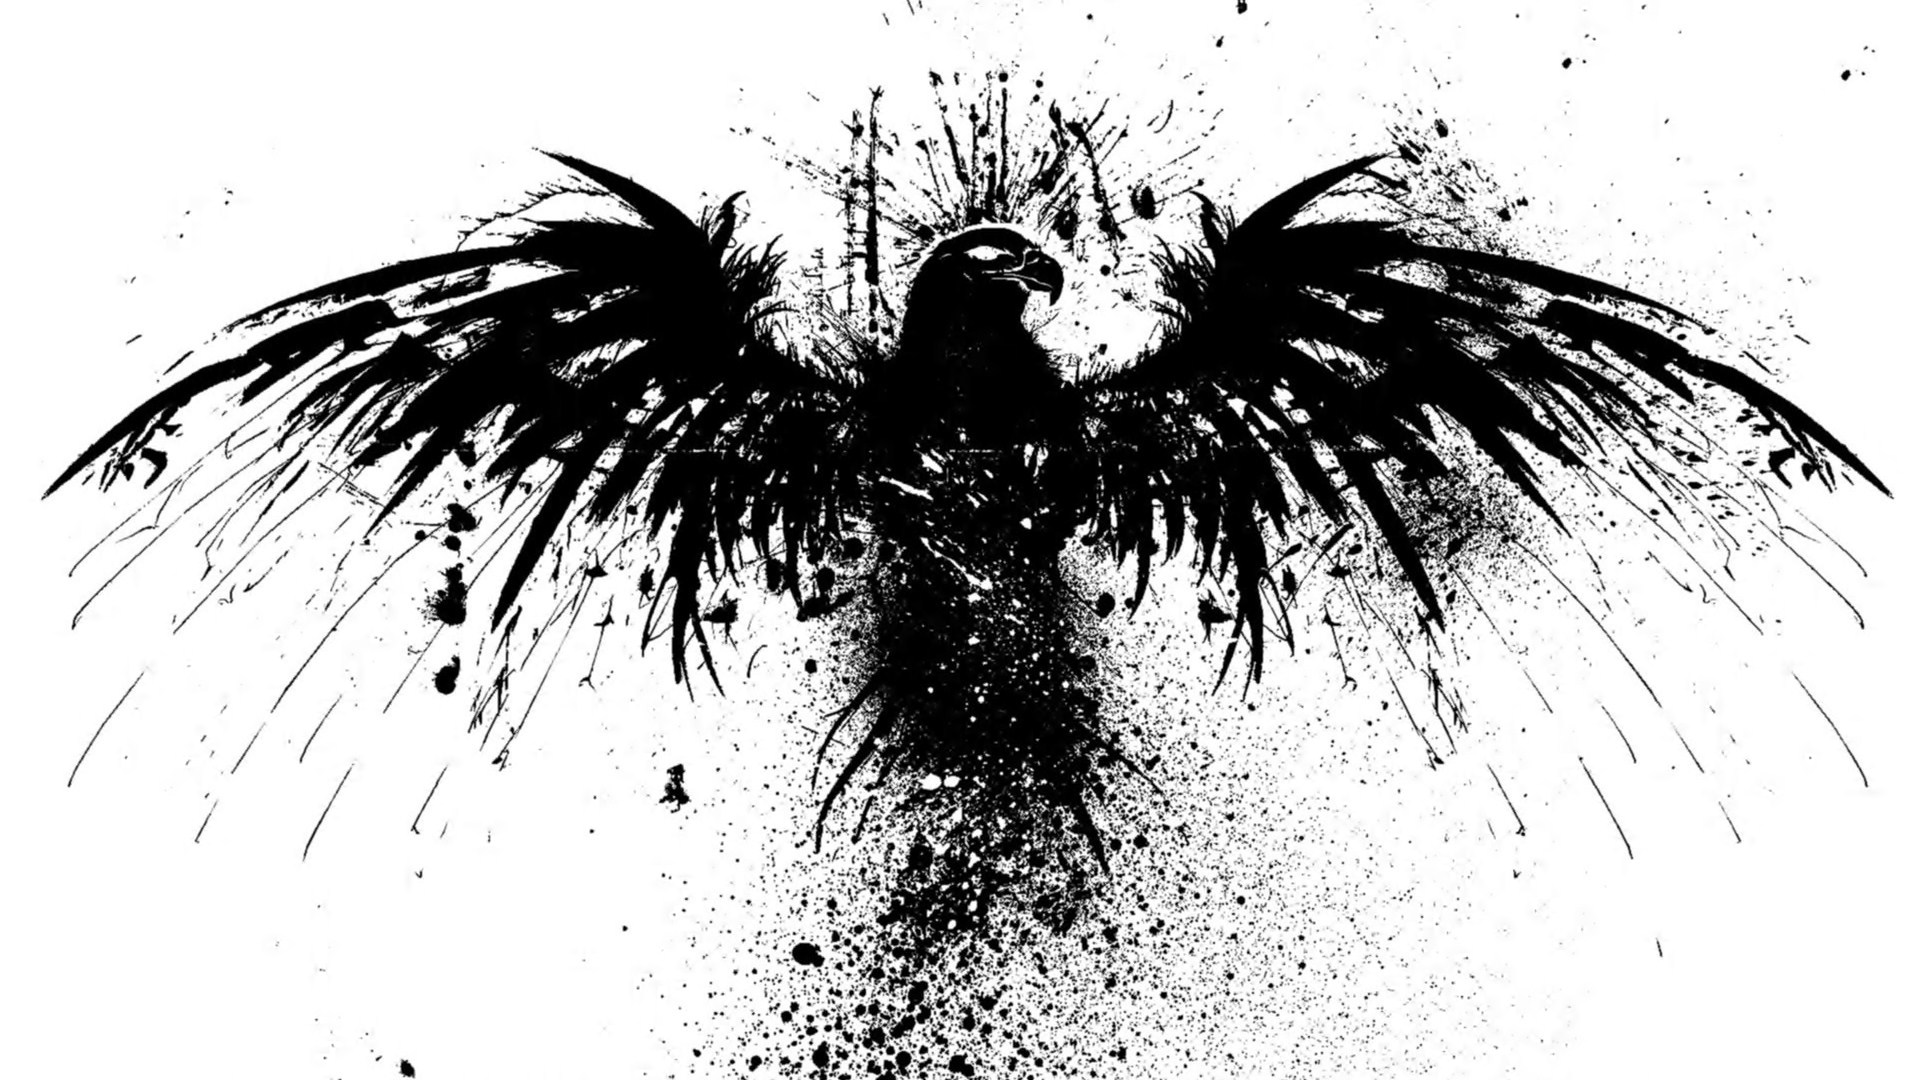 Skull art fantasy head logo bird black hd wallpaper ...